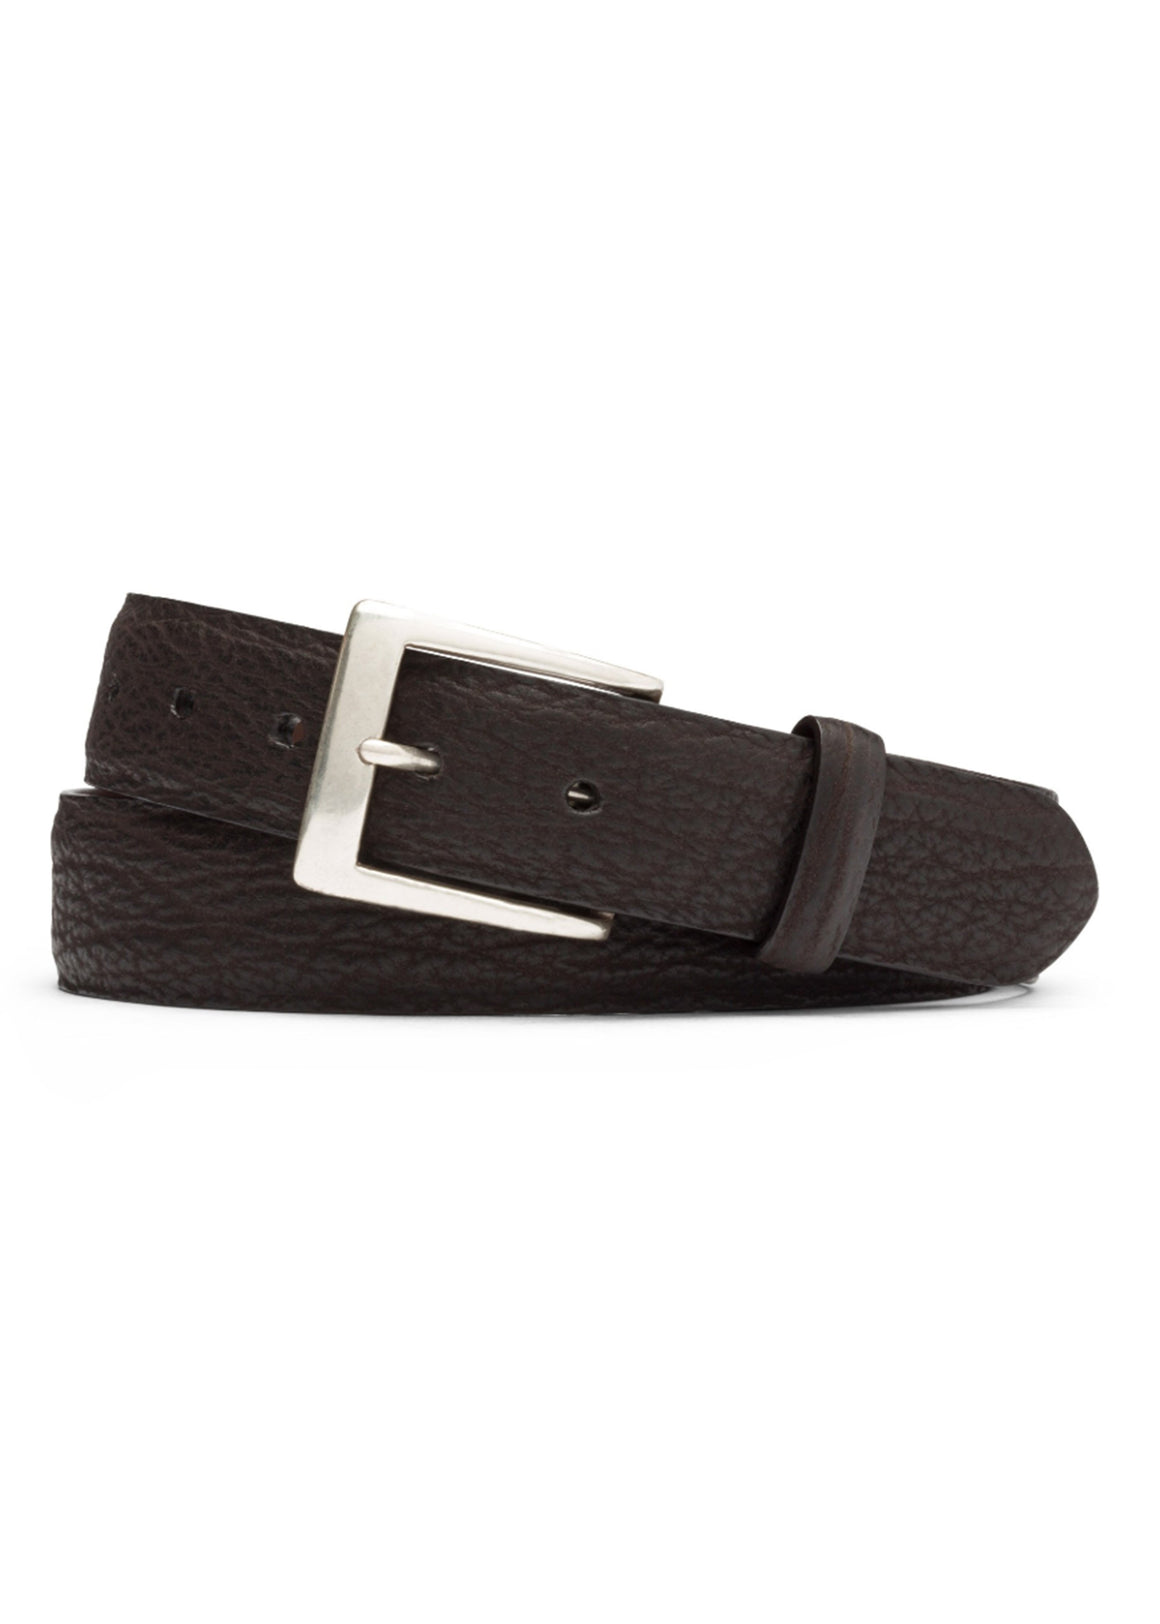 W. Kleinberg Shark Belt | Chocolate